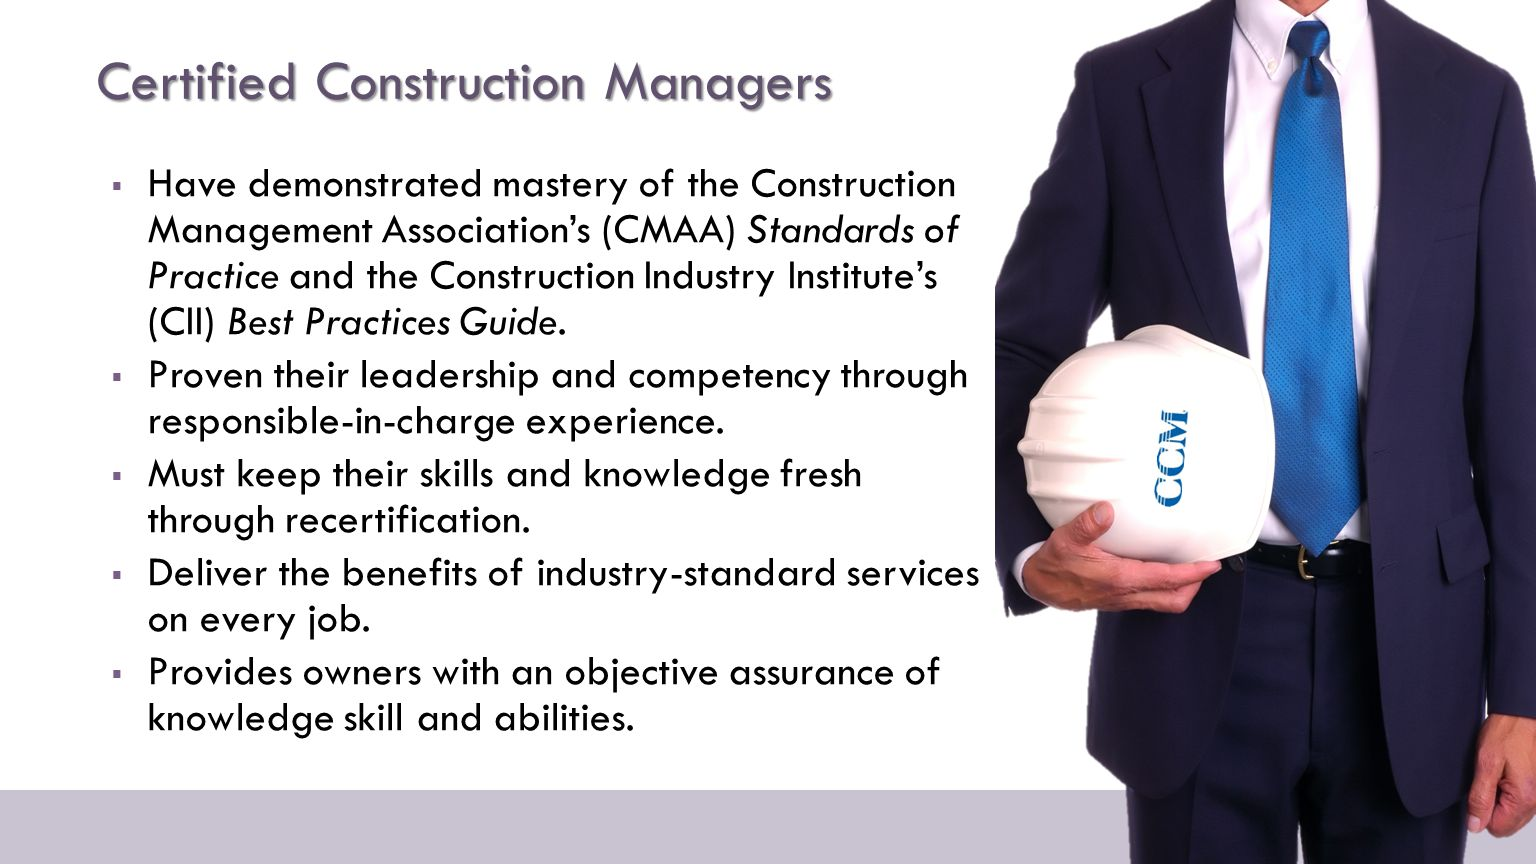 Certified Construction Managers  Have demonstrated mastery of the Construction Management Association's (CMAA) Standards of Practice and the Construction Industry Institute's (CII) Best Practices Guide.